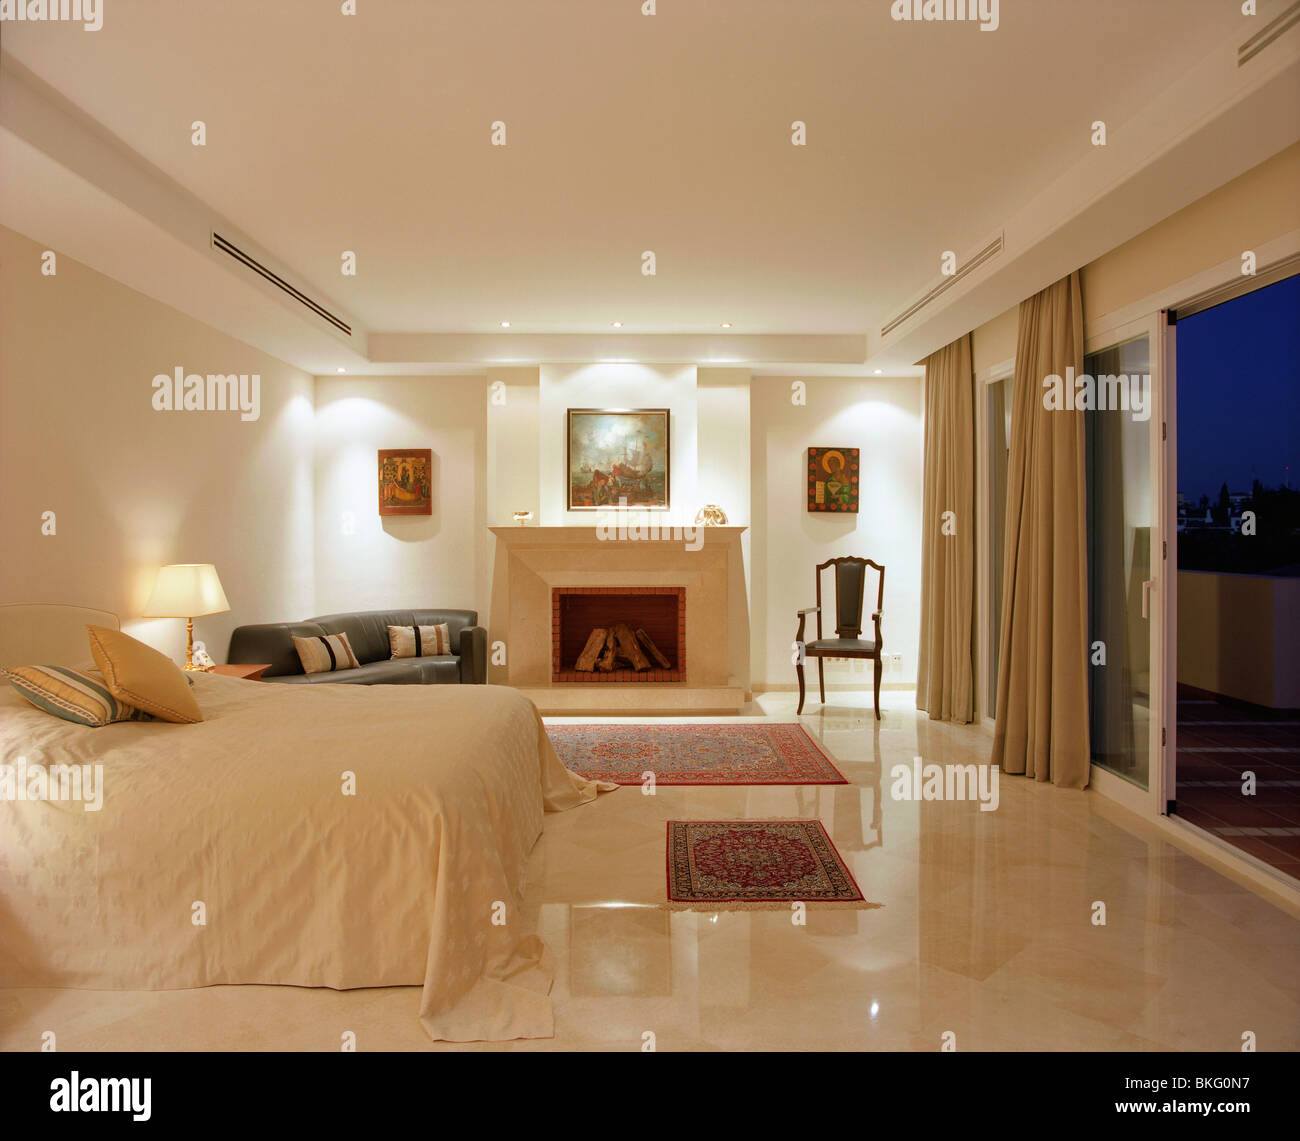 Down Lighting In Modern Cream Bedroom With Marble Floor Fireplace And Bed Cover